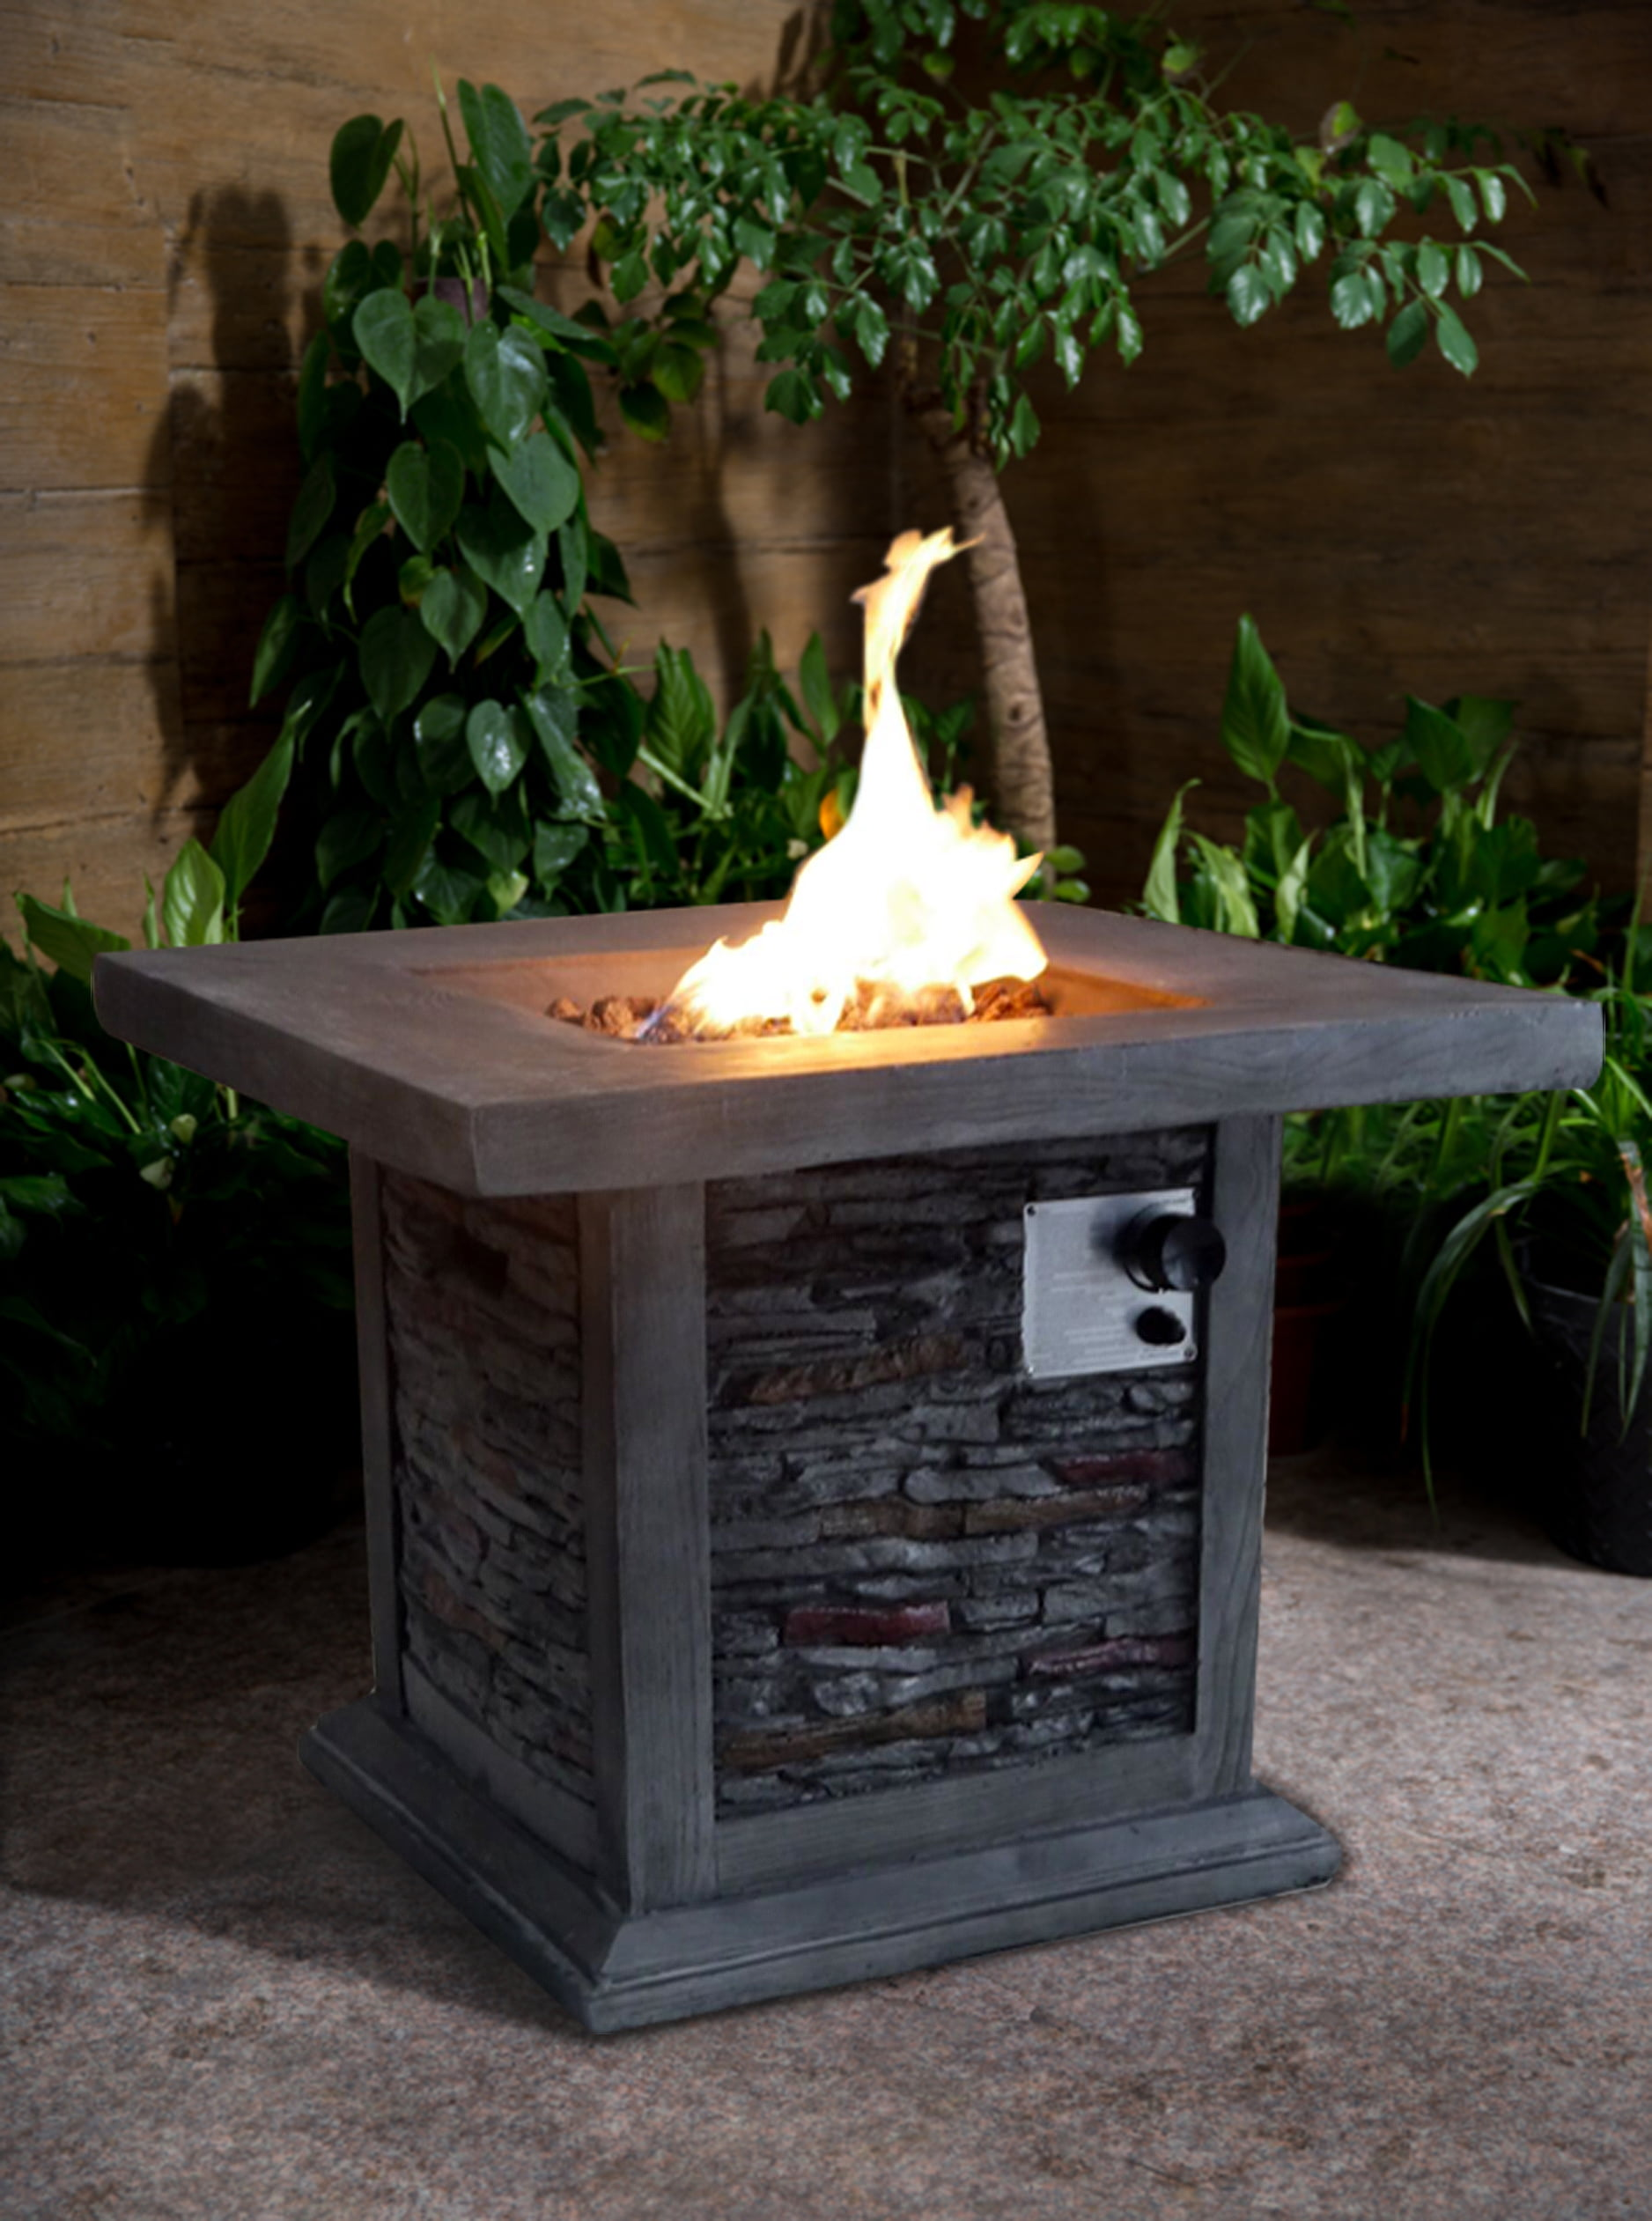 Guanacaste Gray Stone Gas Outdoor Firepit by Crawford & Burke